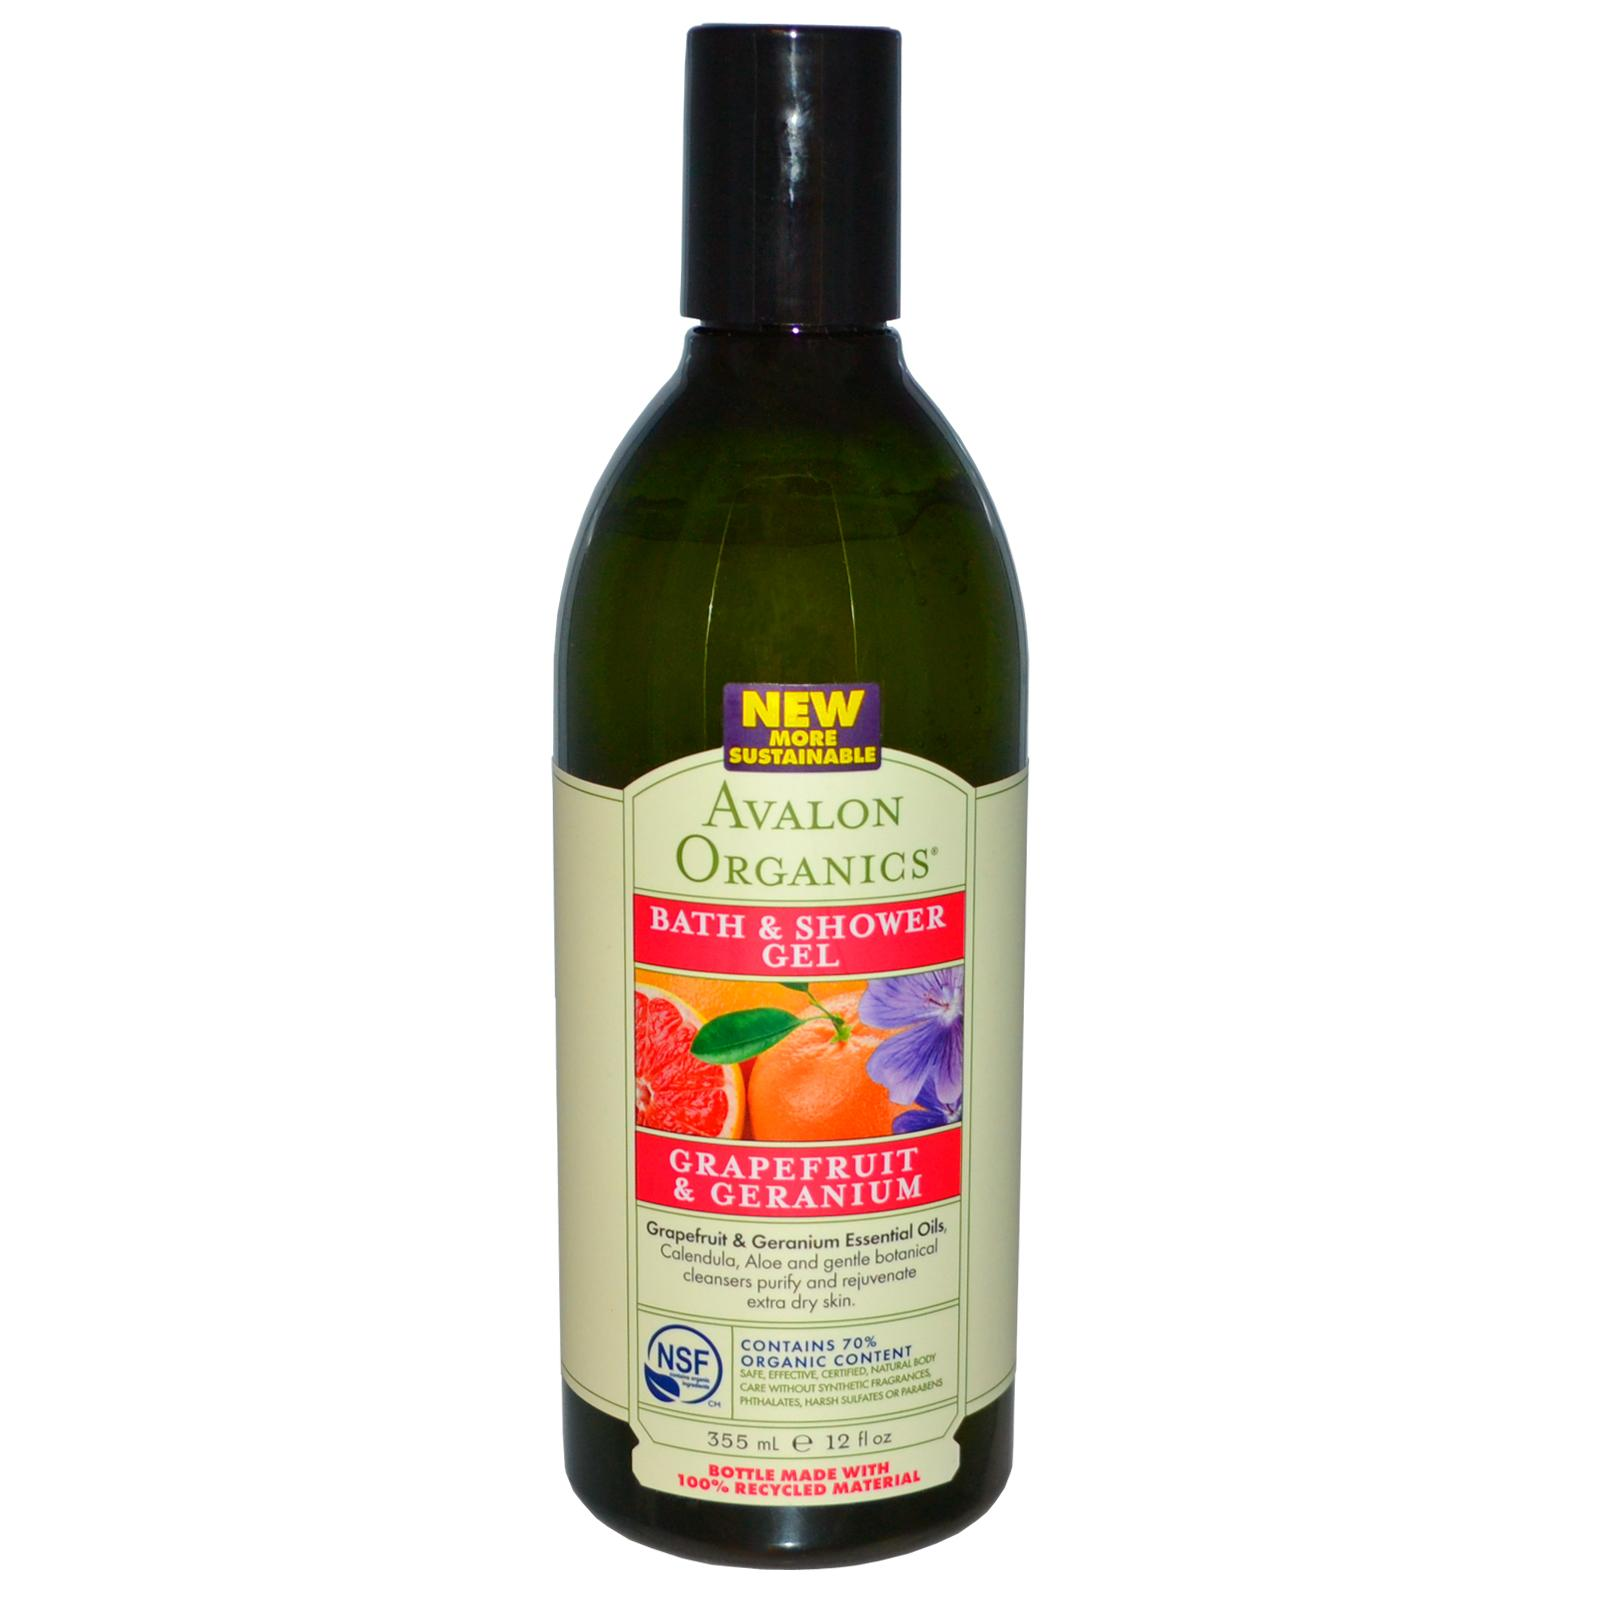 Avalon Organics Bath & Shower Gel Grapefruit & Geranium - Refreshing, 12 oz, From Avalon Organic Botanicals at Sears.com